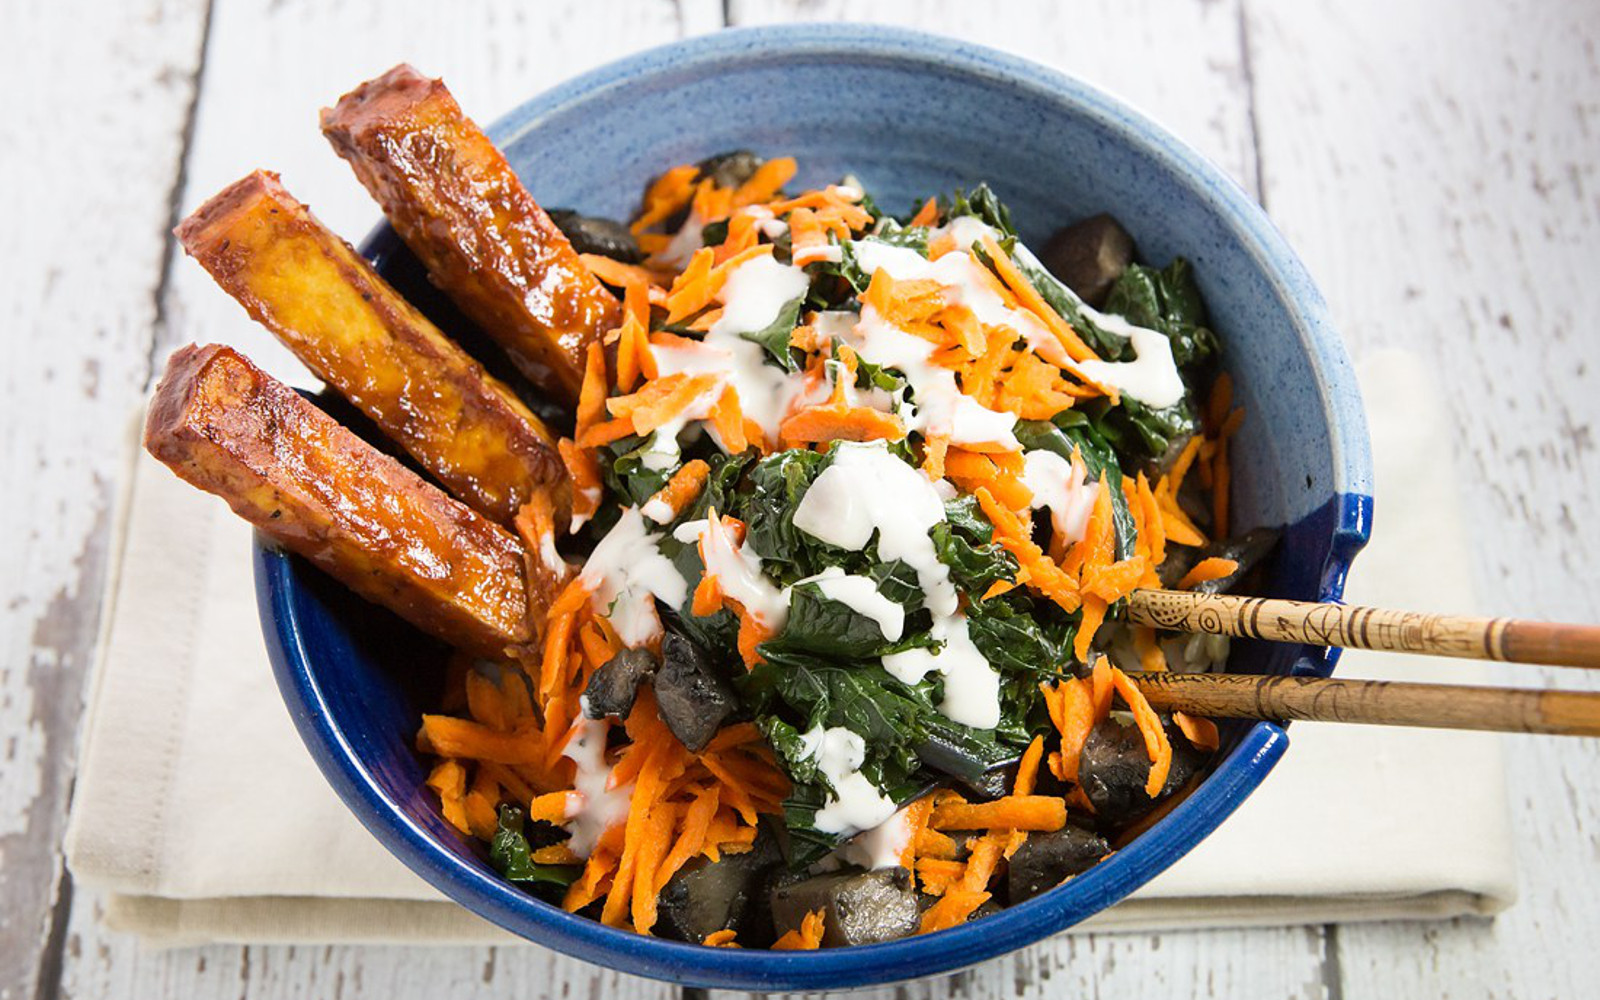 BBQ Tofu and Braised Garlic Kale Bowl With 5 Minute Ranch Dressing